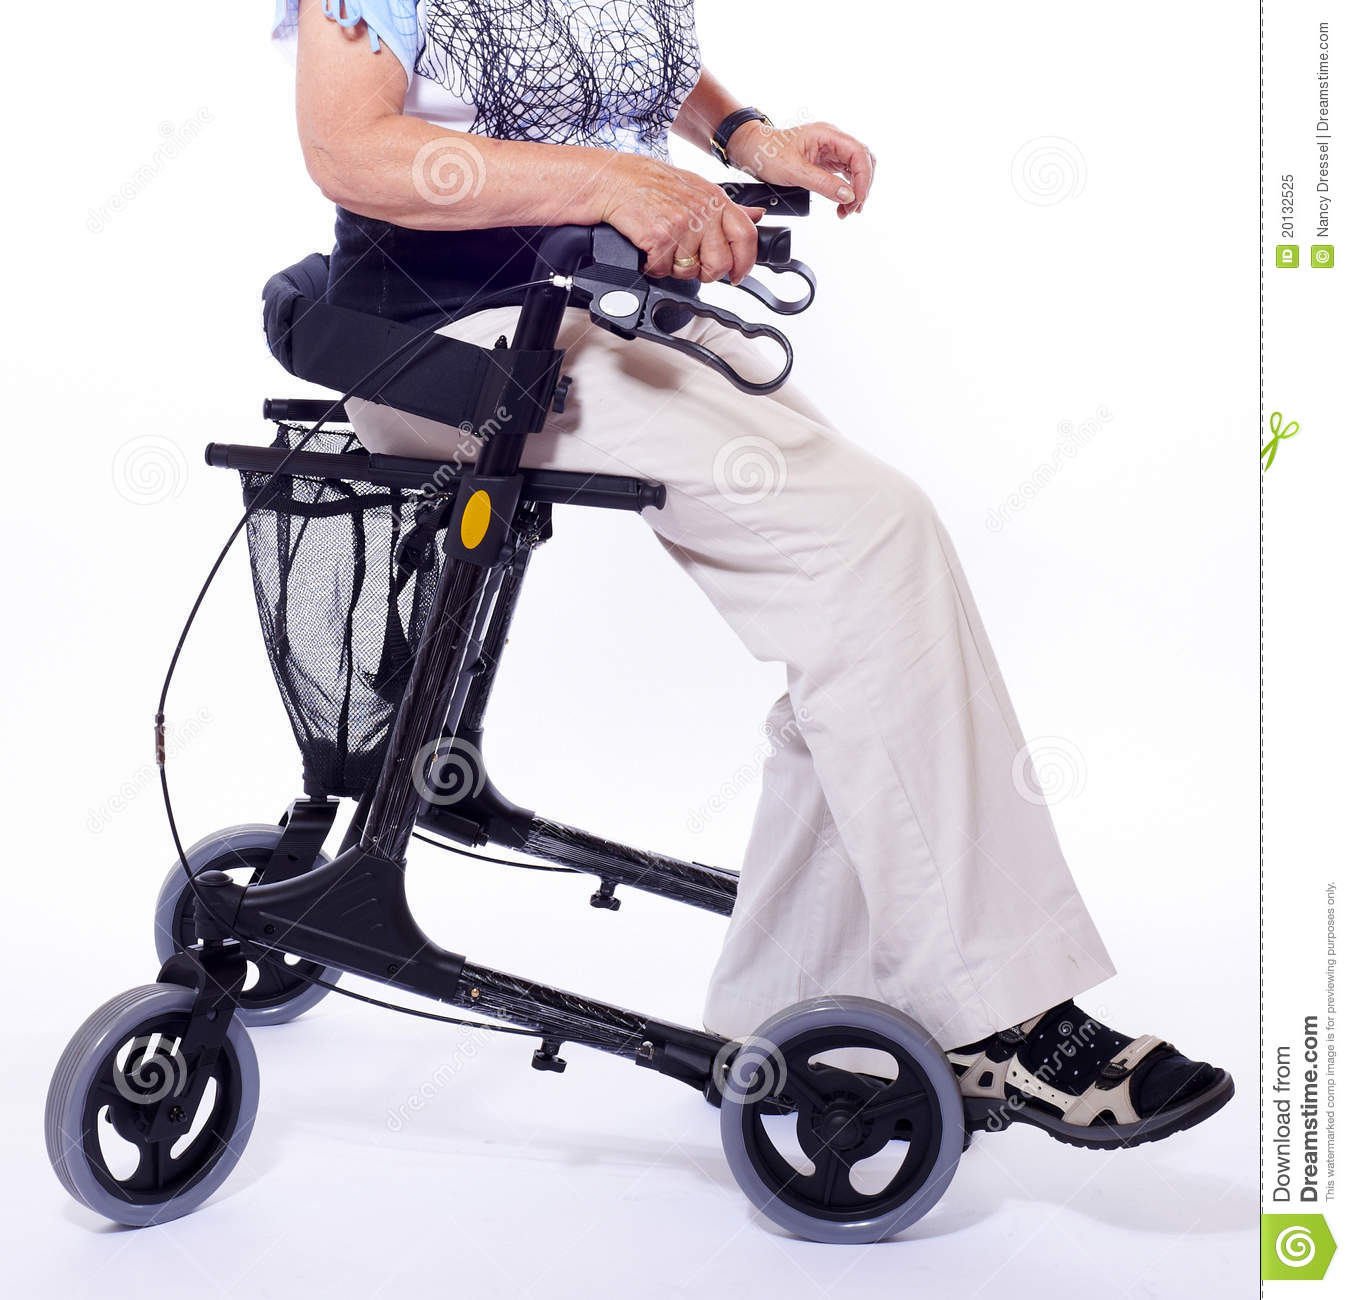 bodypart of elderly woman sitting on walker stock image